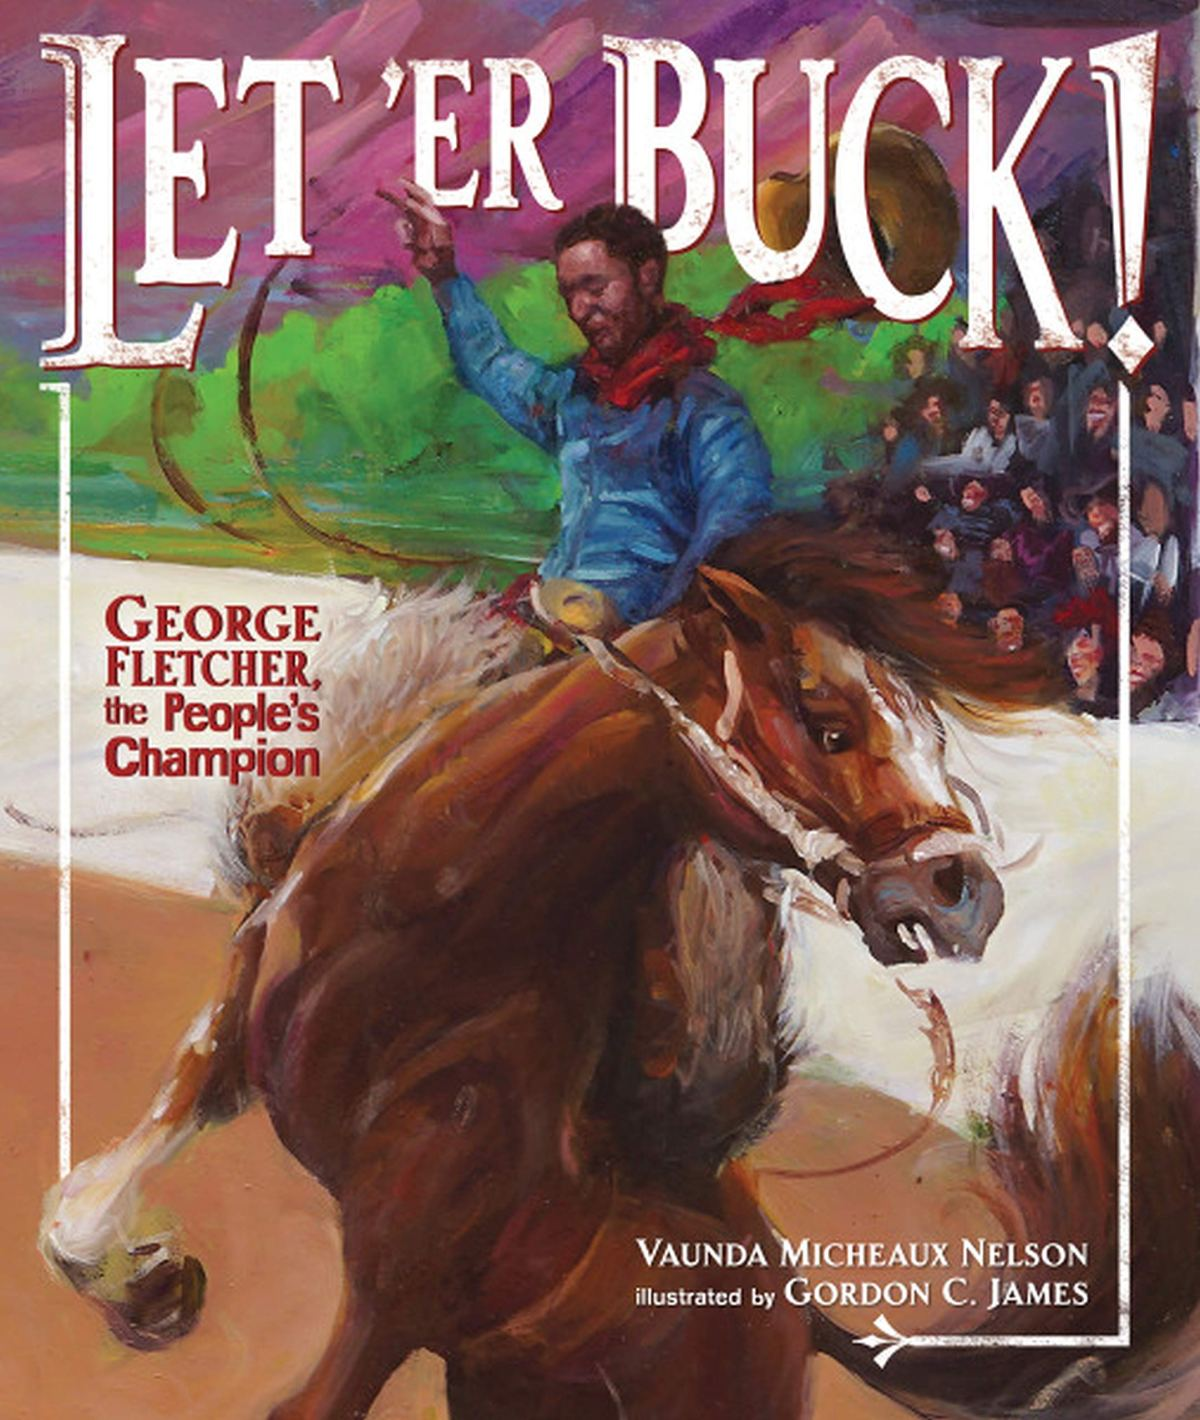 let 'er buck cover